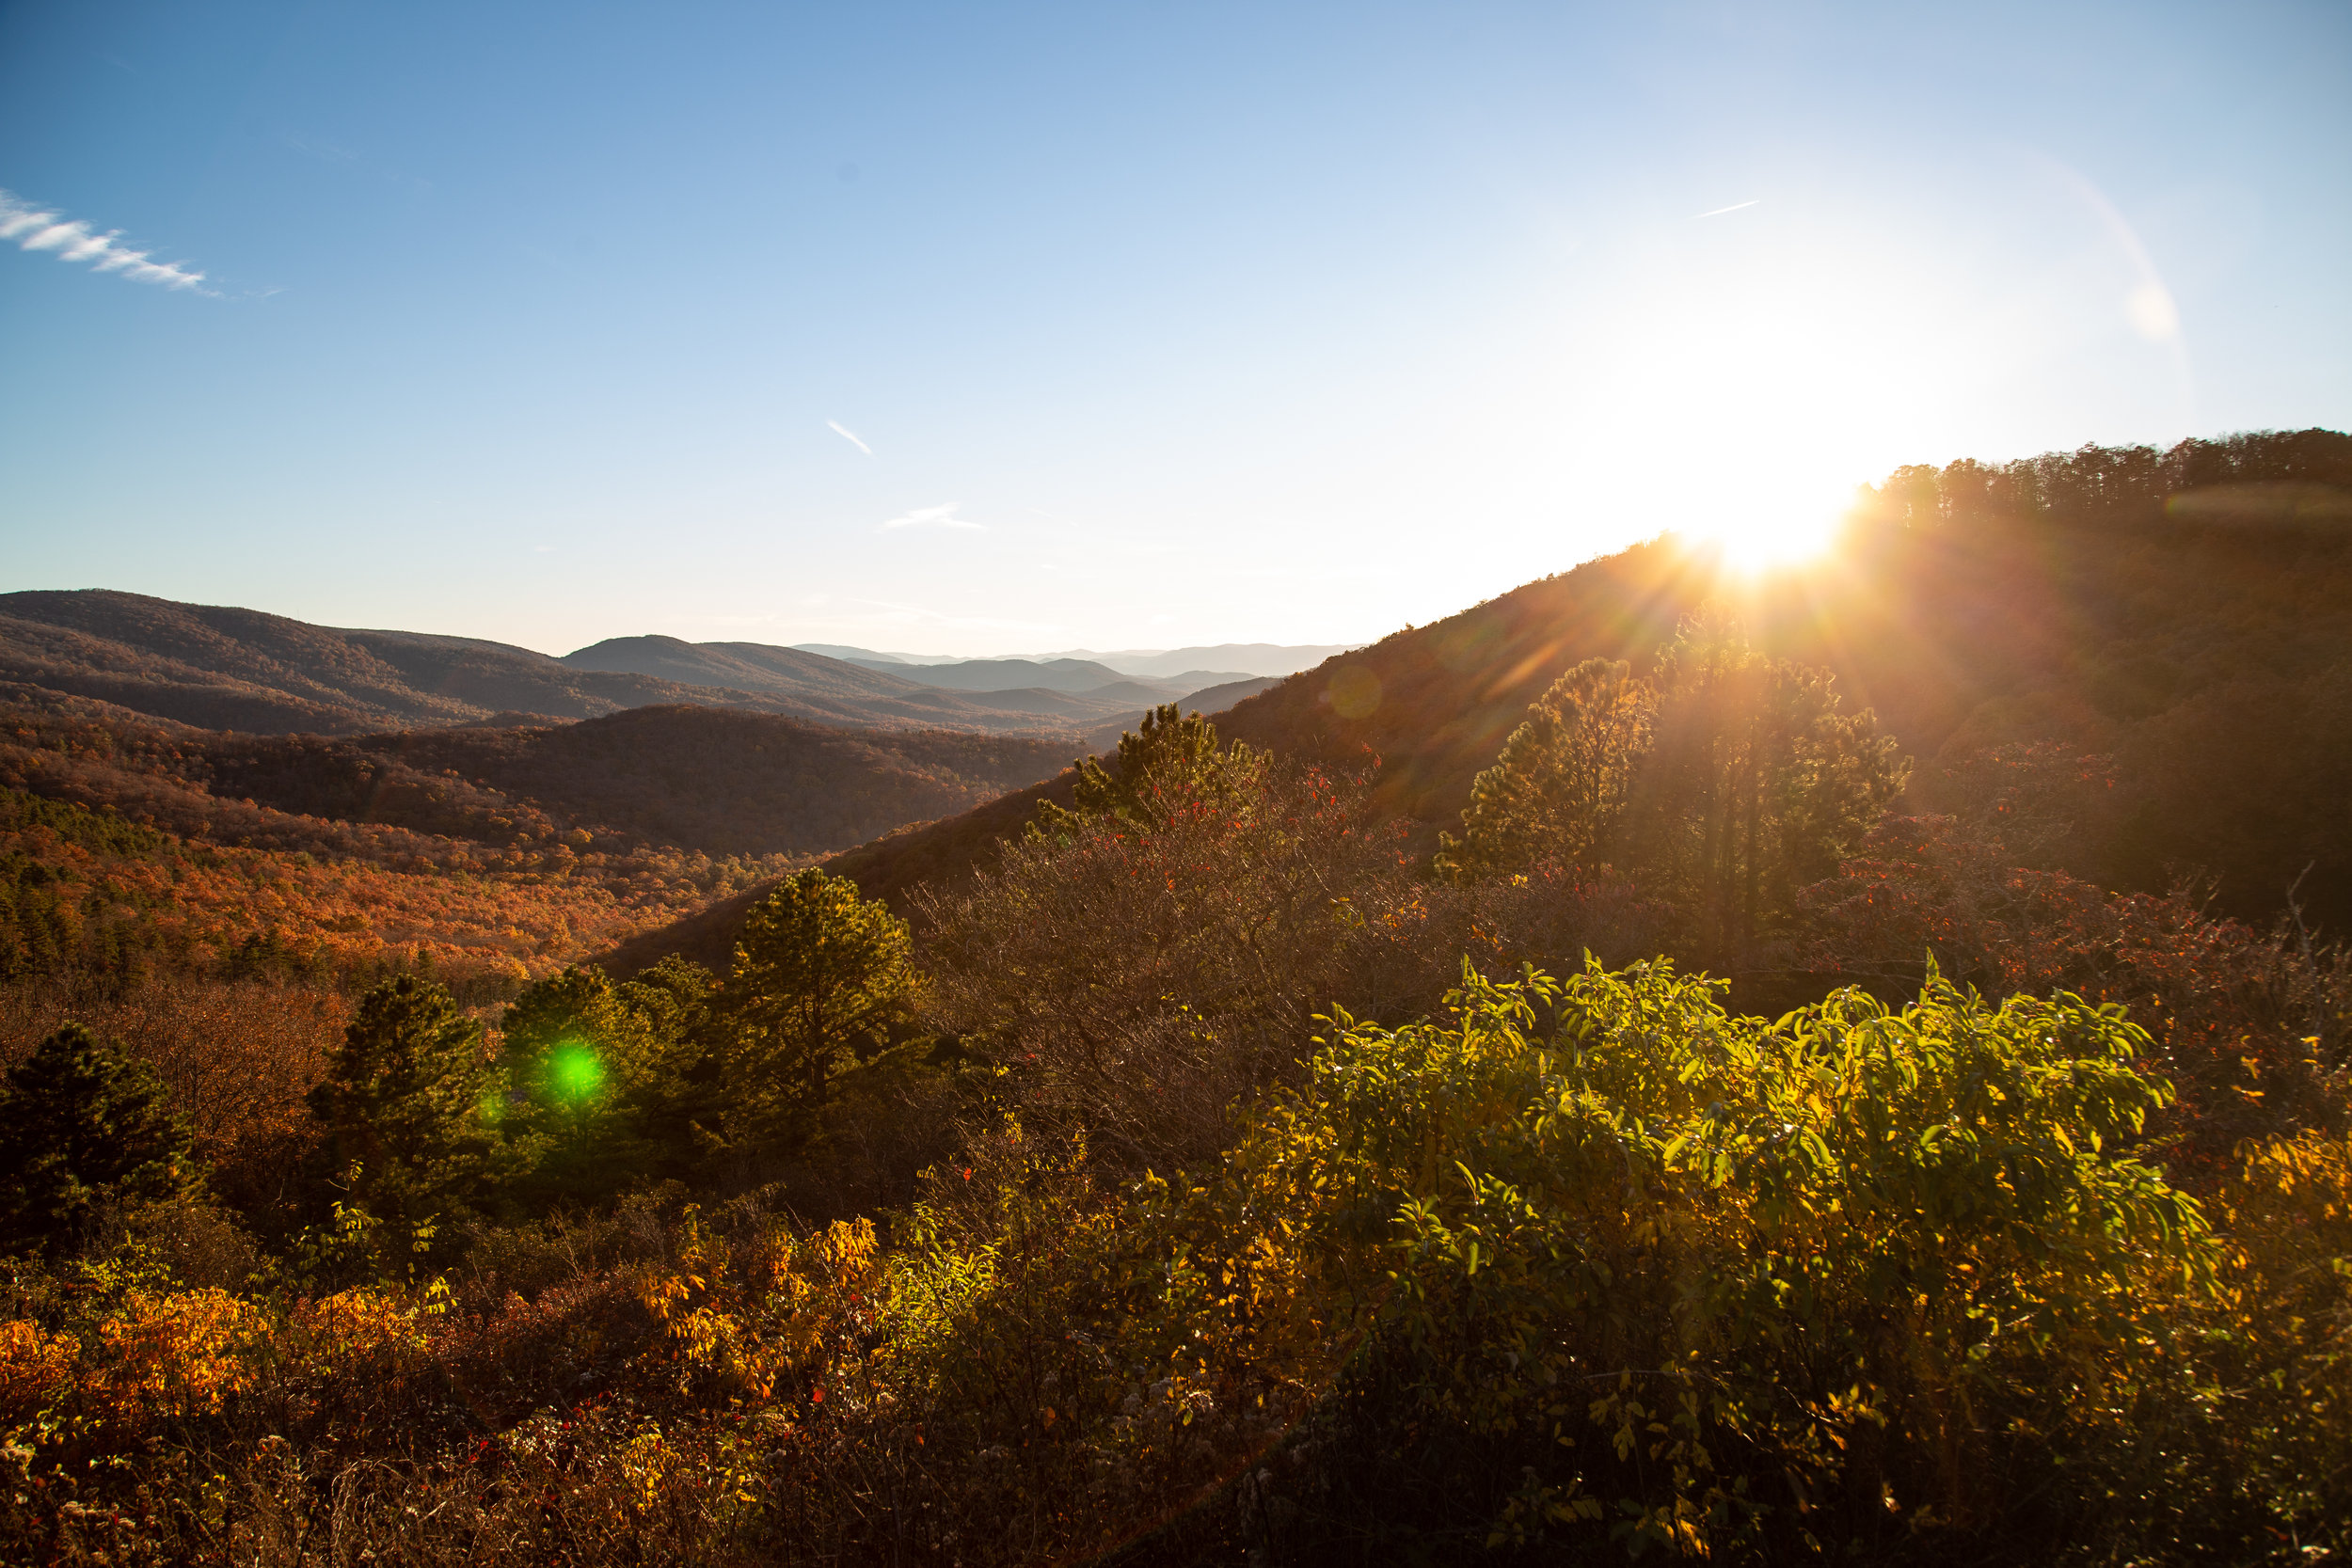 Shenandoah-National-Park-blue-ridge-parkway-day-mountains-afternoon-haze-layers-distance-texture-trees-fall-sunset-evening-sunflare-sun-flare